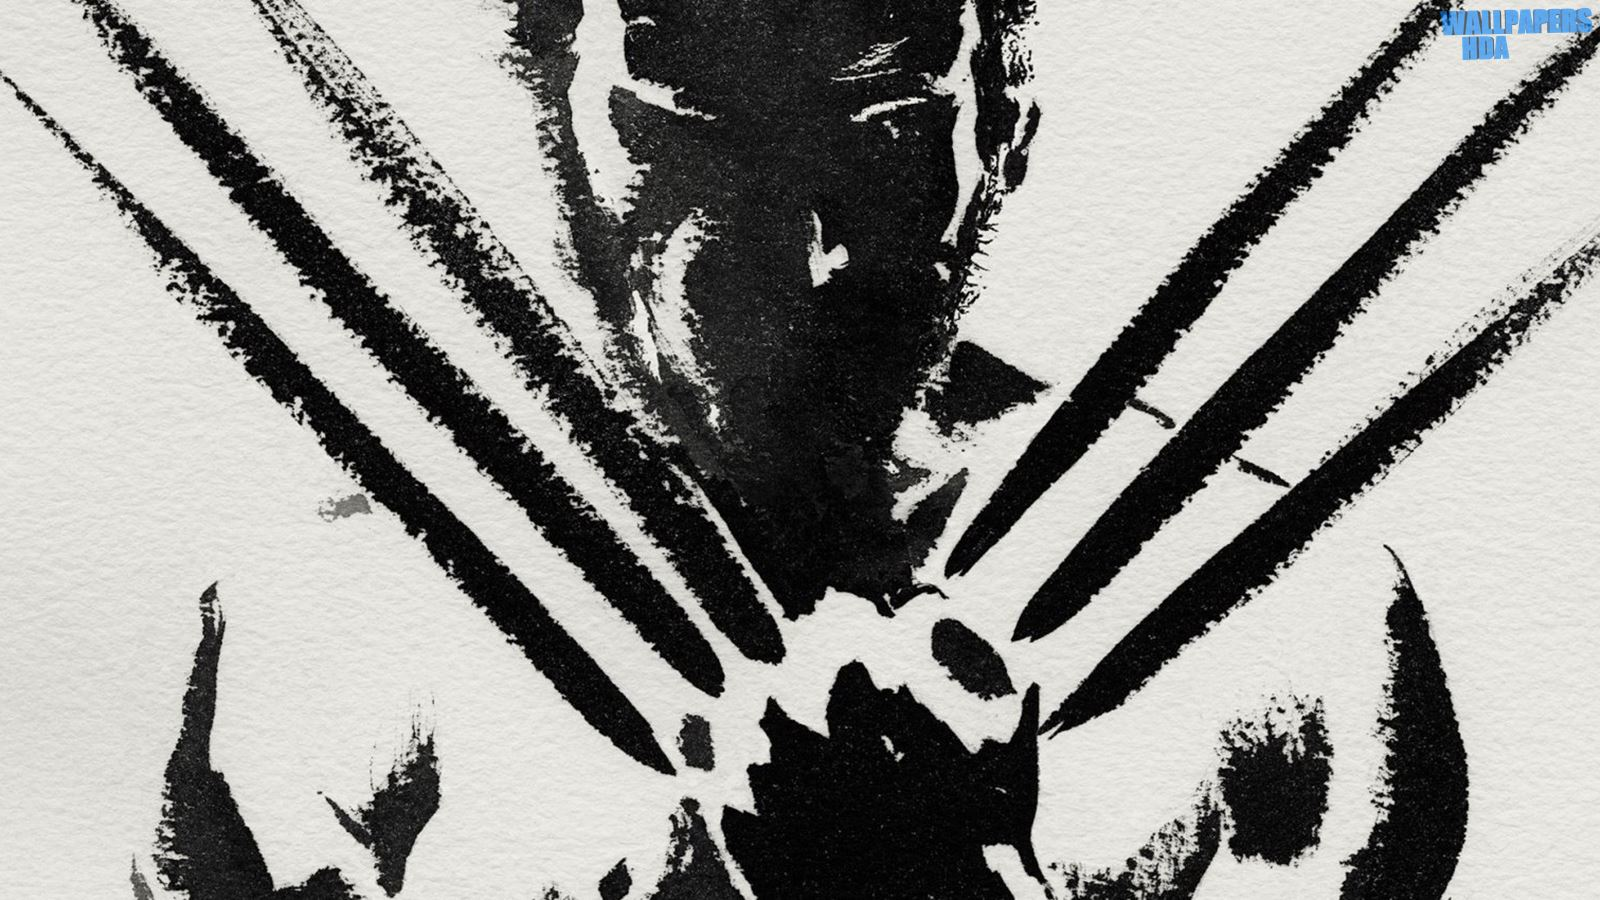 The wolverine 2013 movie poster wallpaper 1600x900